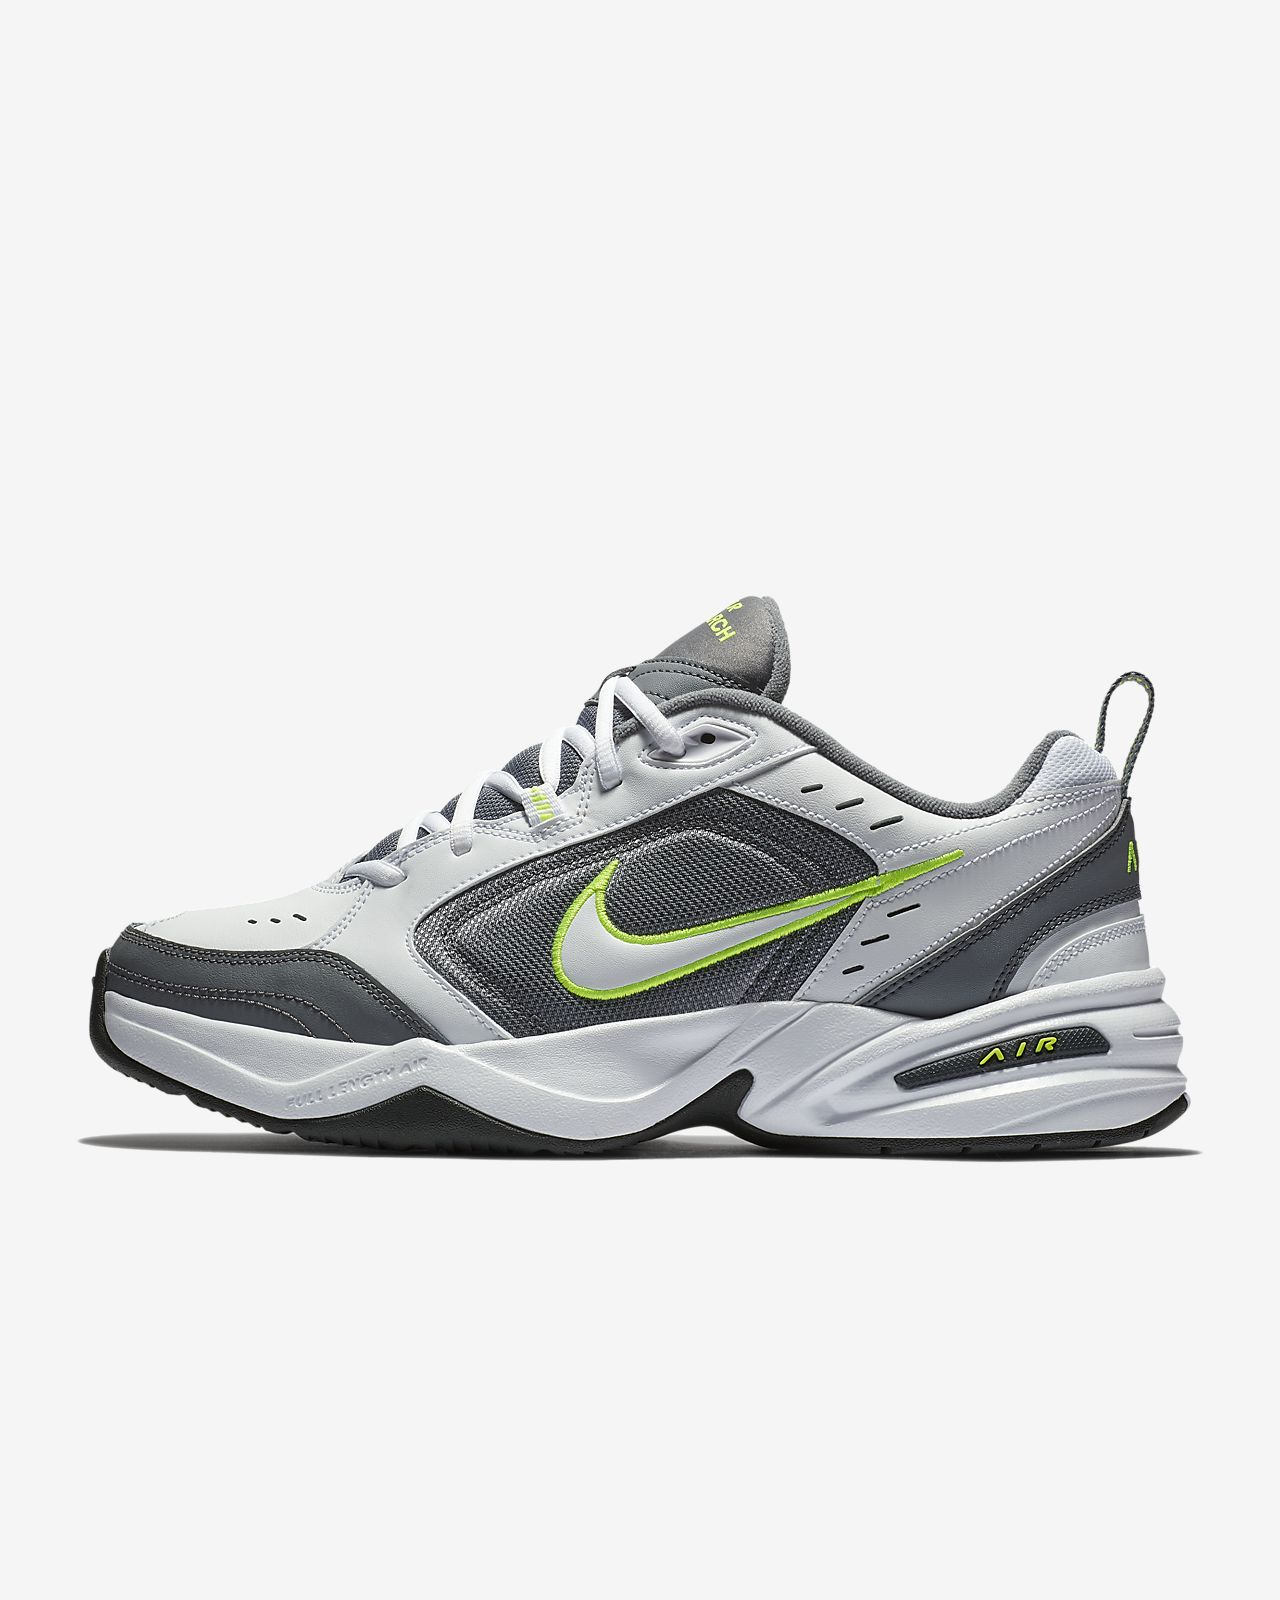 05267226ae77 Nike Air Monarch IV Lifestyle Gym Shoe. Nike.com